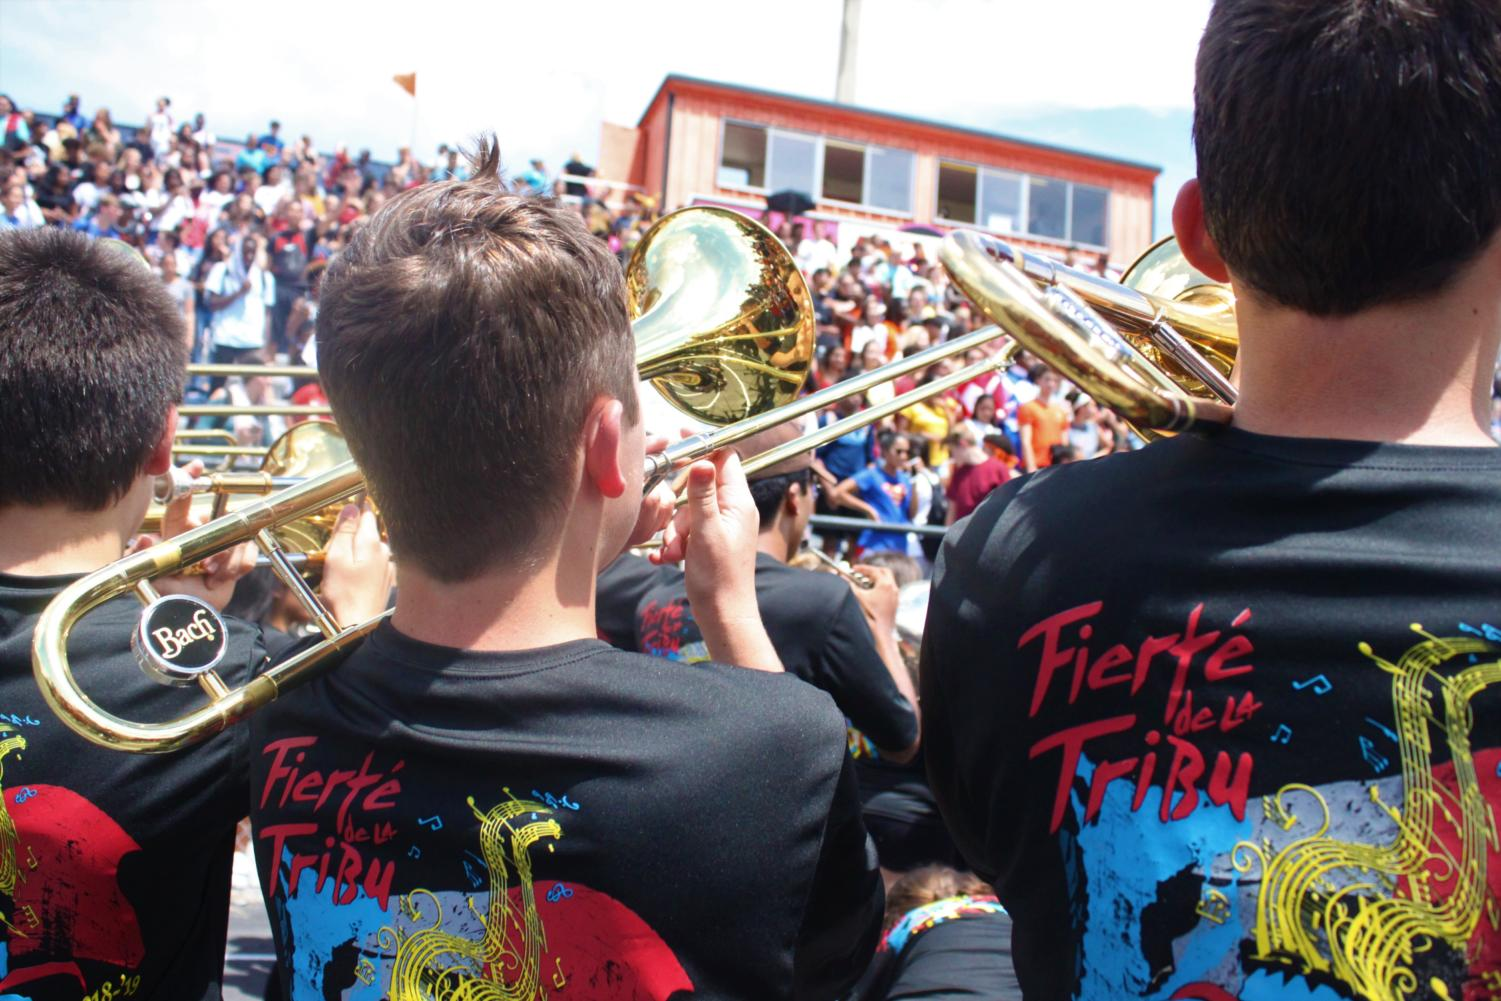 The France-bound band members proclaim their school spirit with vibrant new T-shirts.